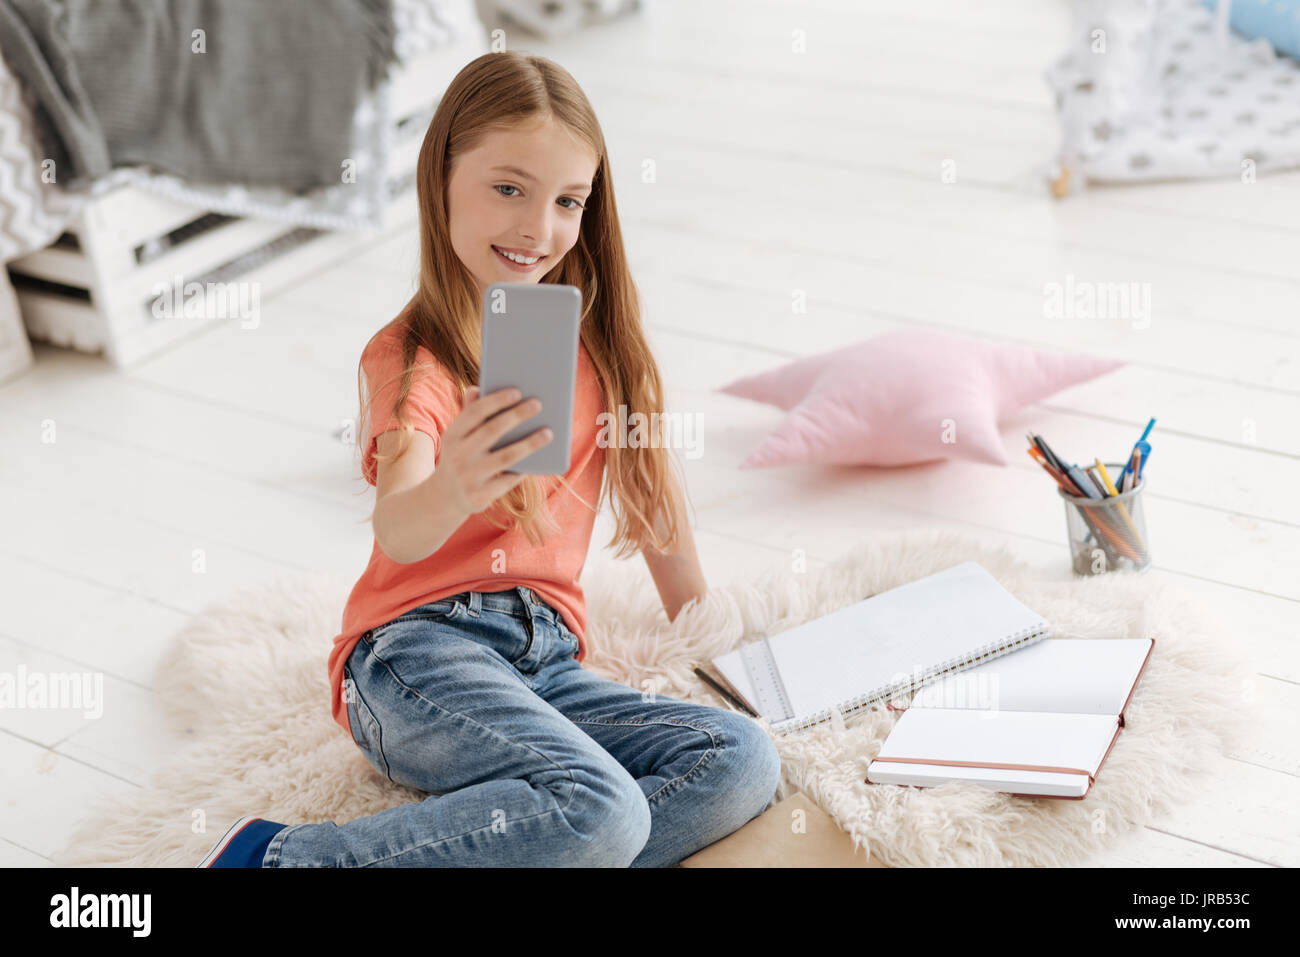 Cute schoolgirl in casual taking selfies - Stock Image